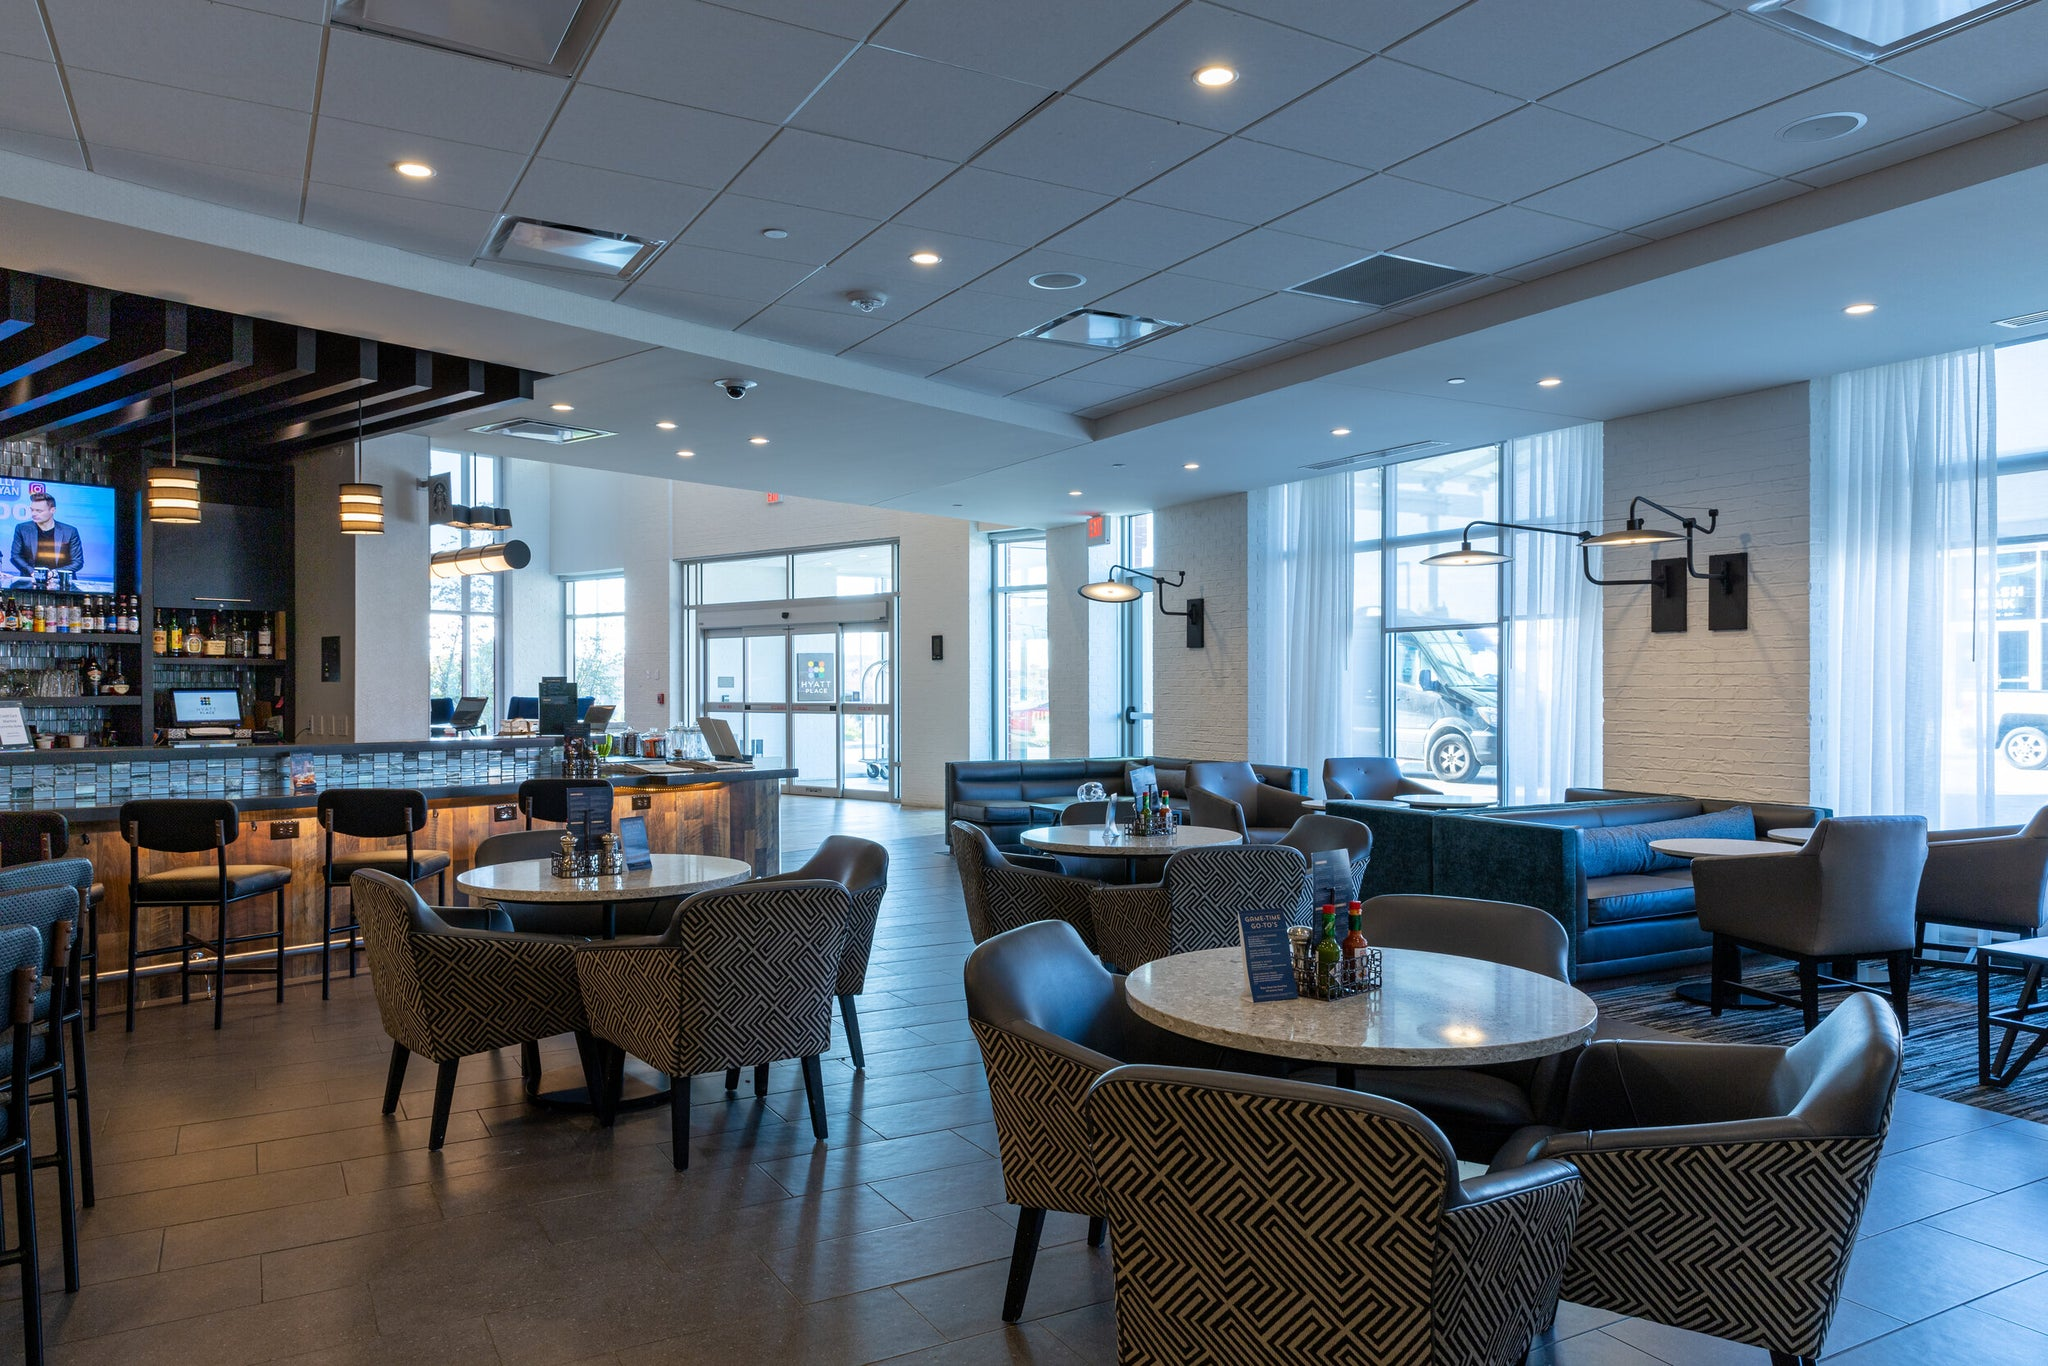 Hyatt Place bar and dining area